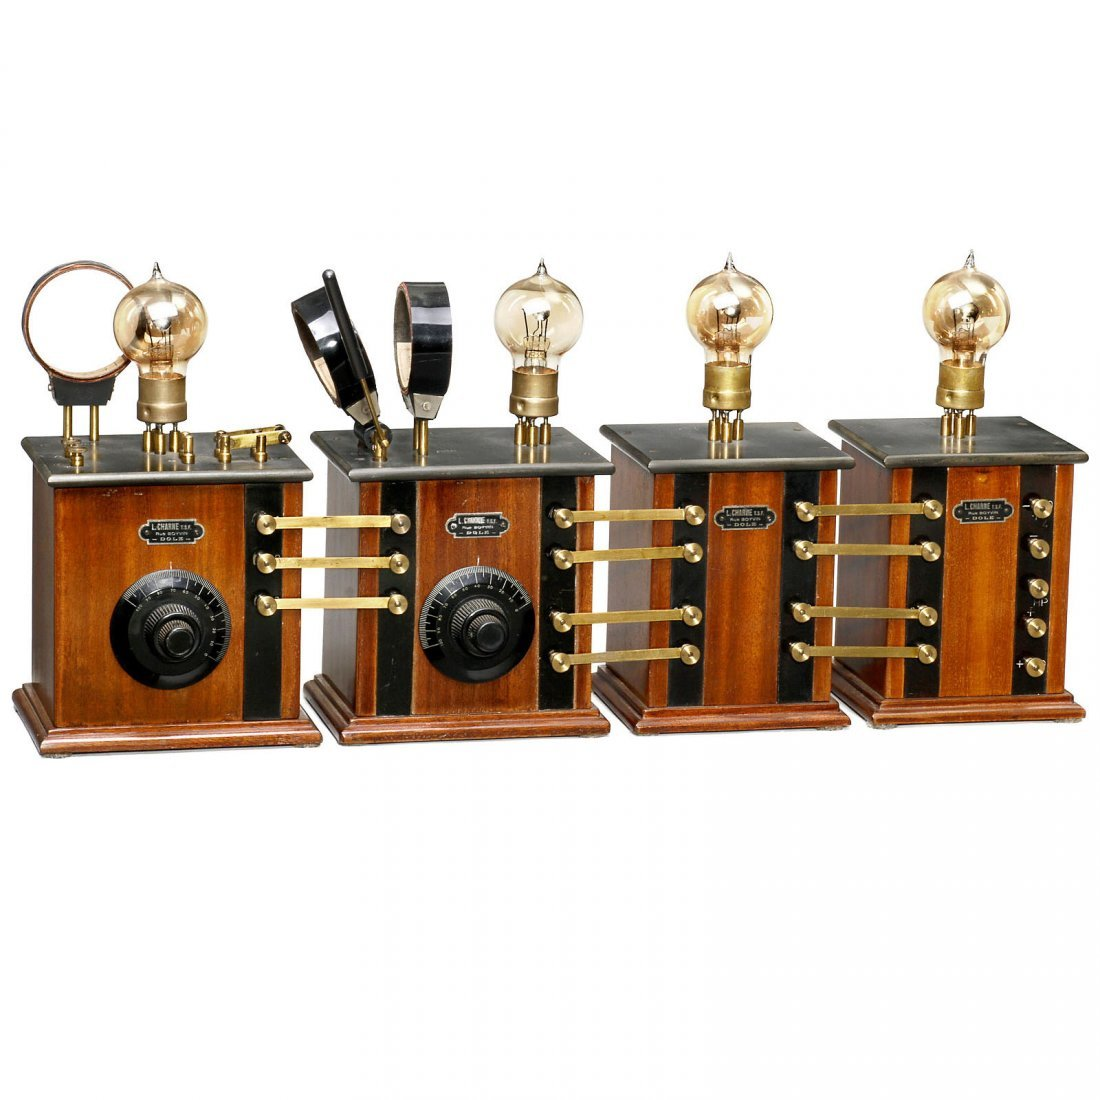 Very Rare French Component Radio by L. Charne, c. 1920